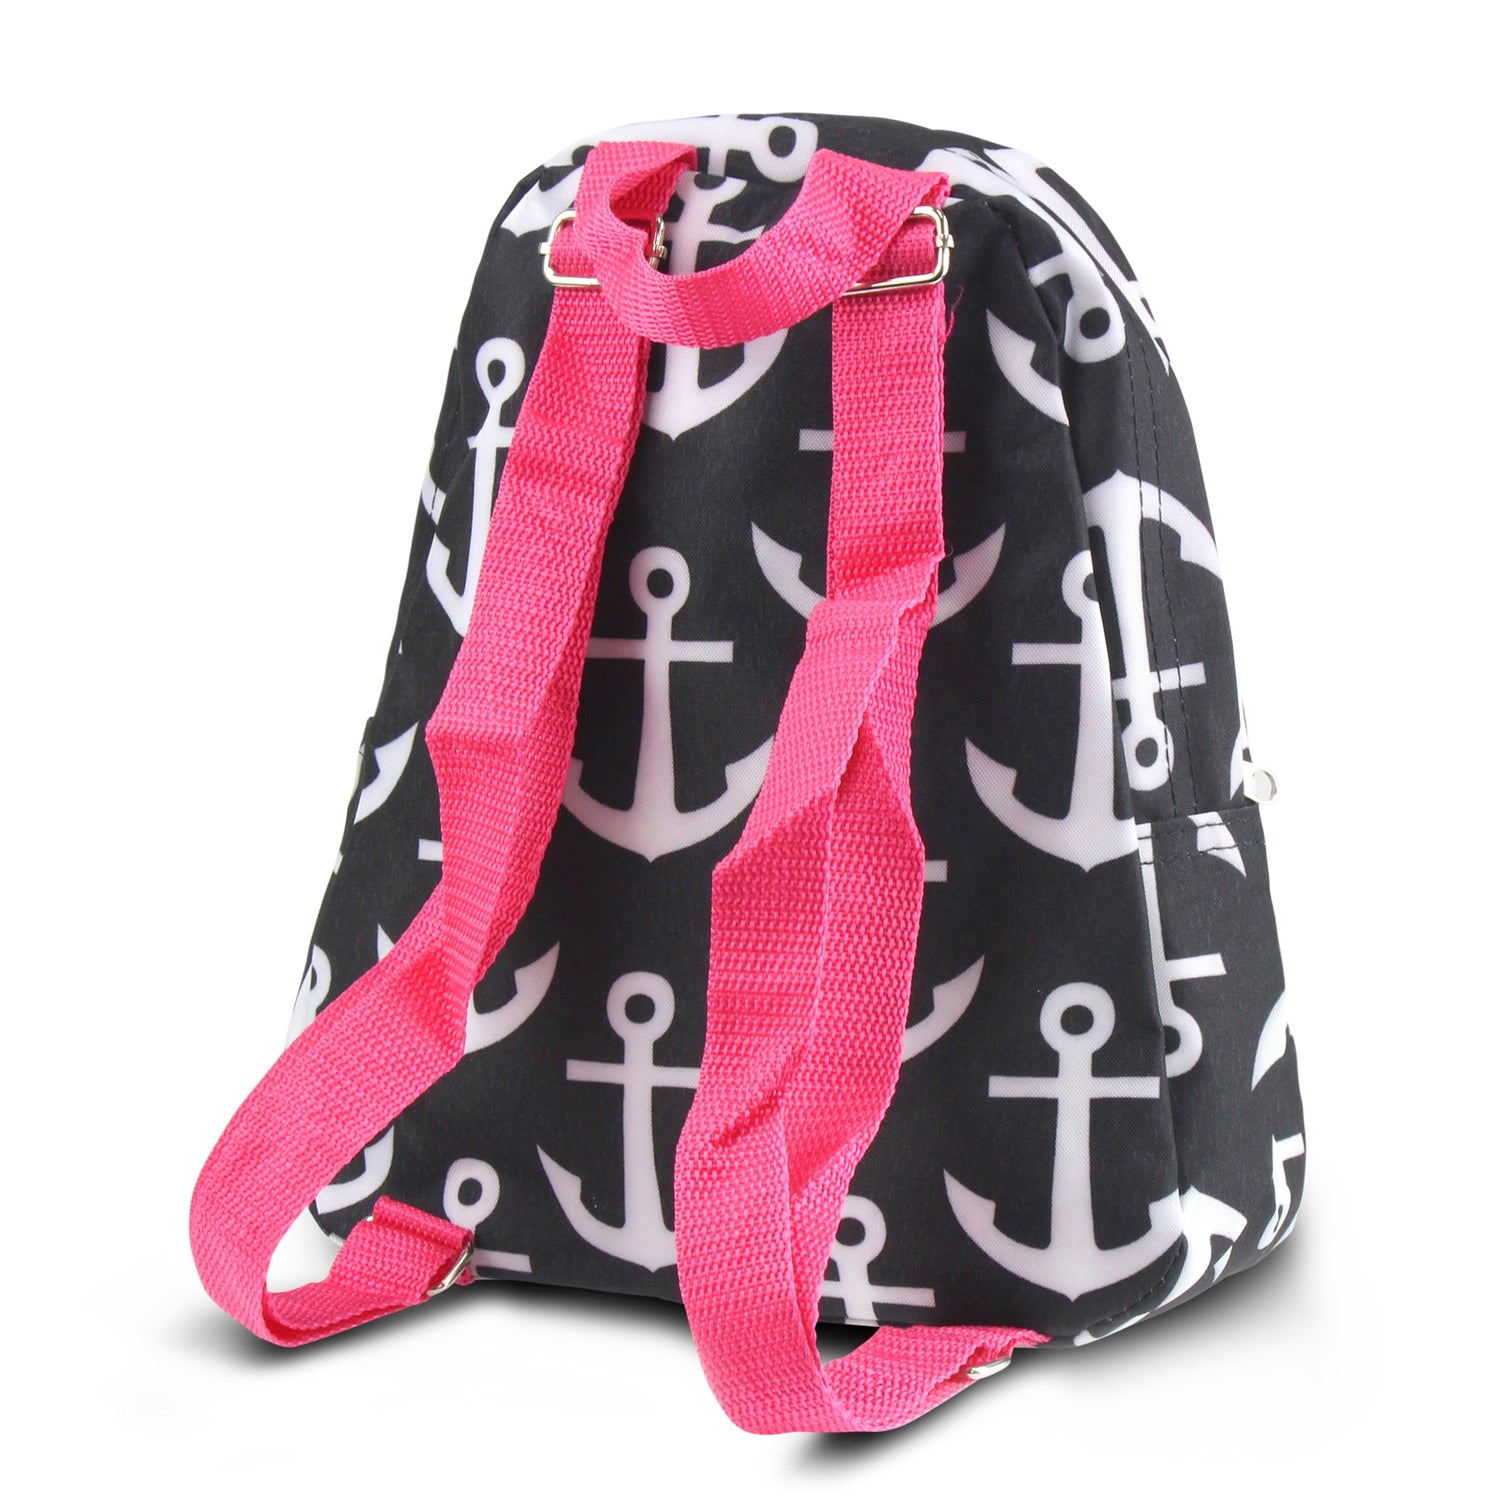 7bf319b8dc29 Shop Zodaca Black Anchors with Pink Trim Stylish Kids Small Backpack  Outdoor Shoulder School Zipper Bag with Adjustable Strap - Free Shipping On  Orders Over ...